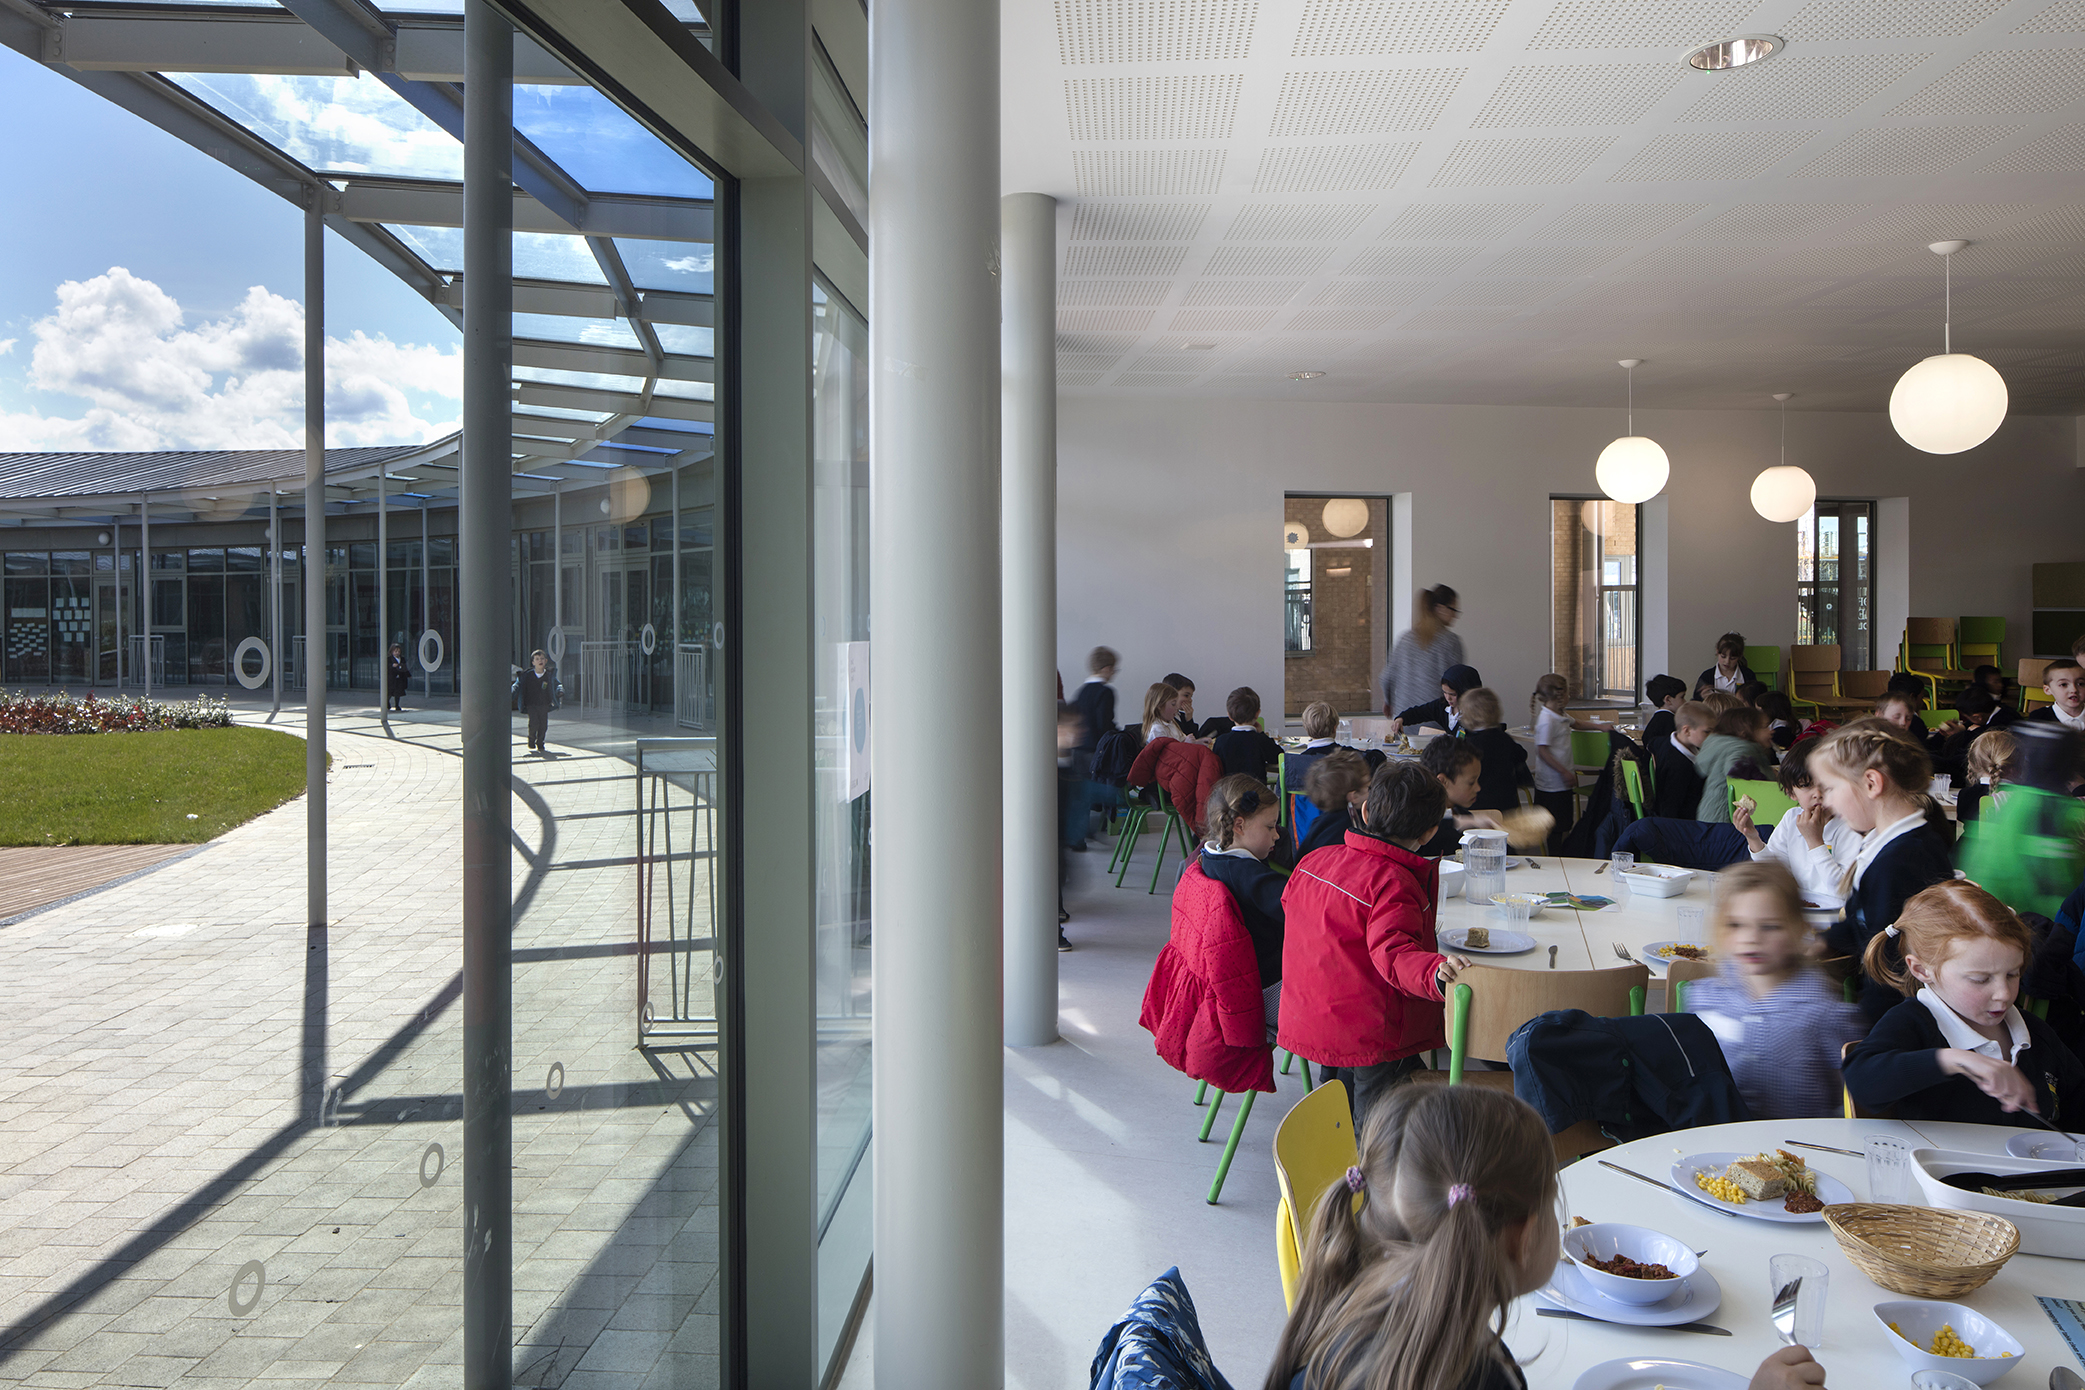 dinning - University of Cambridge Primary School by Marks Barfield Architects